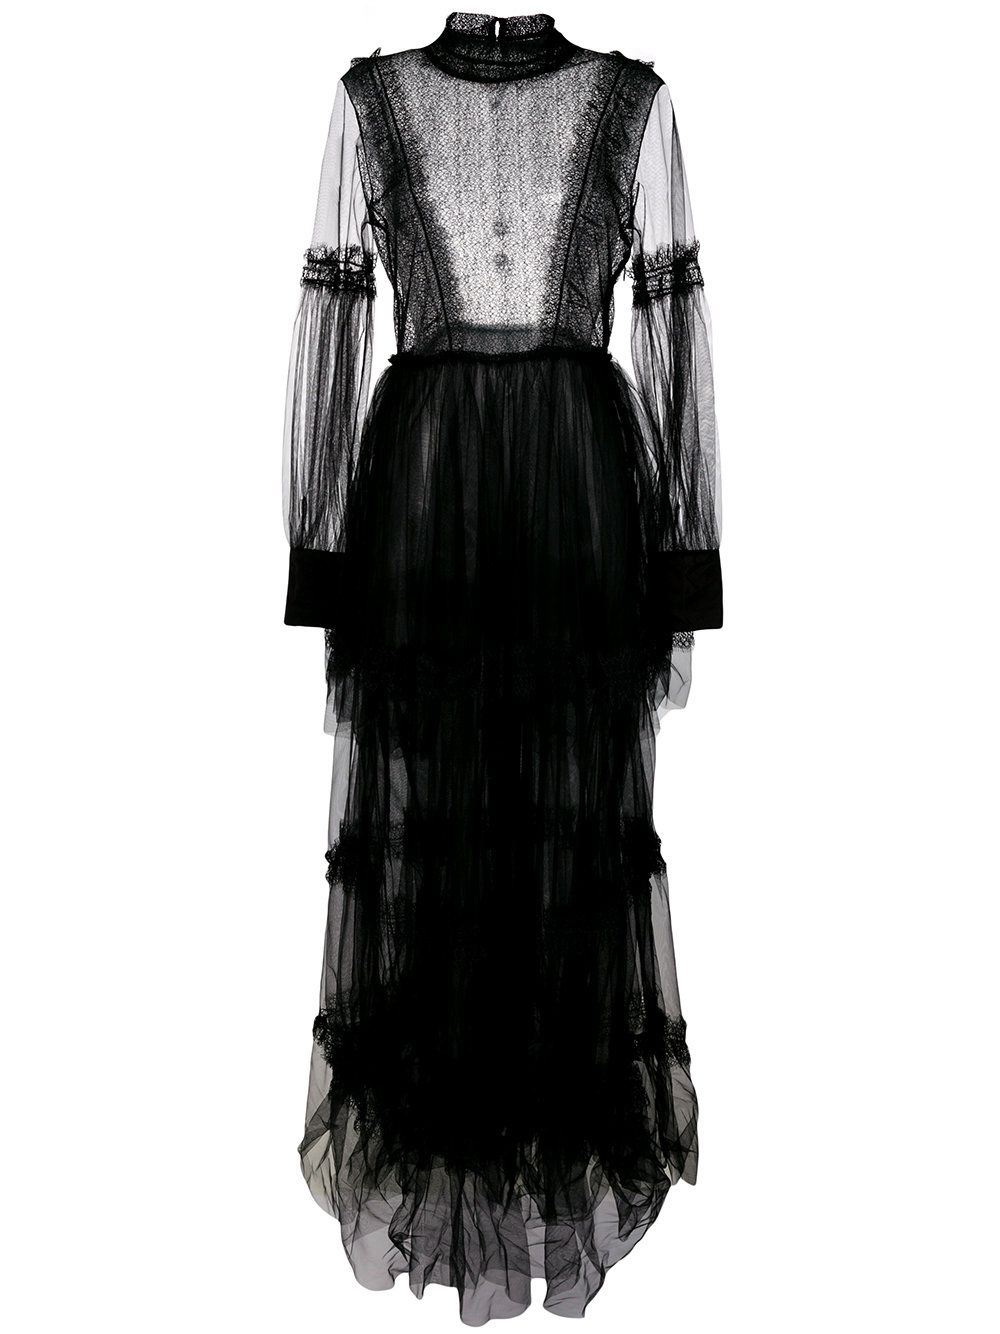 Wandering tiered laceembellished gown dresses pinterest